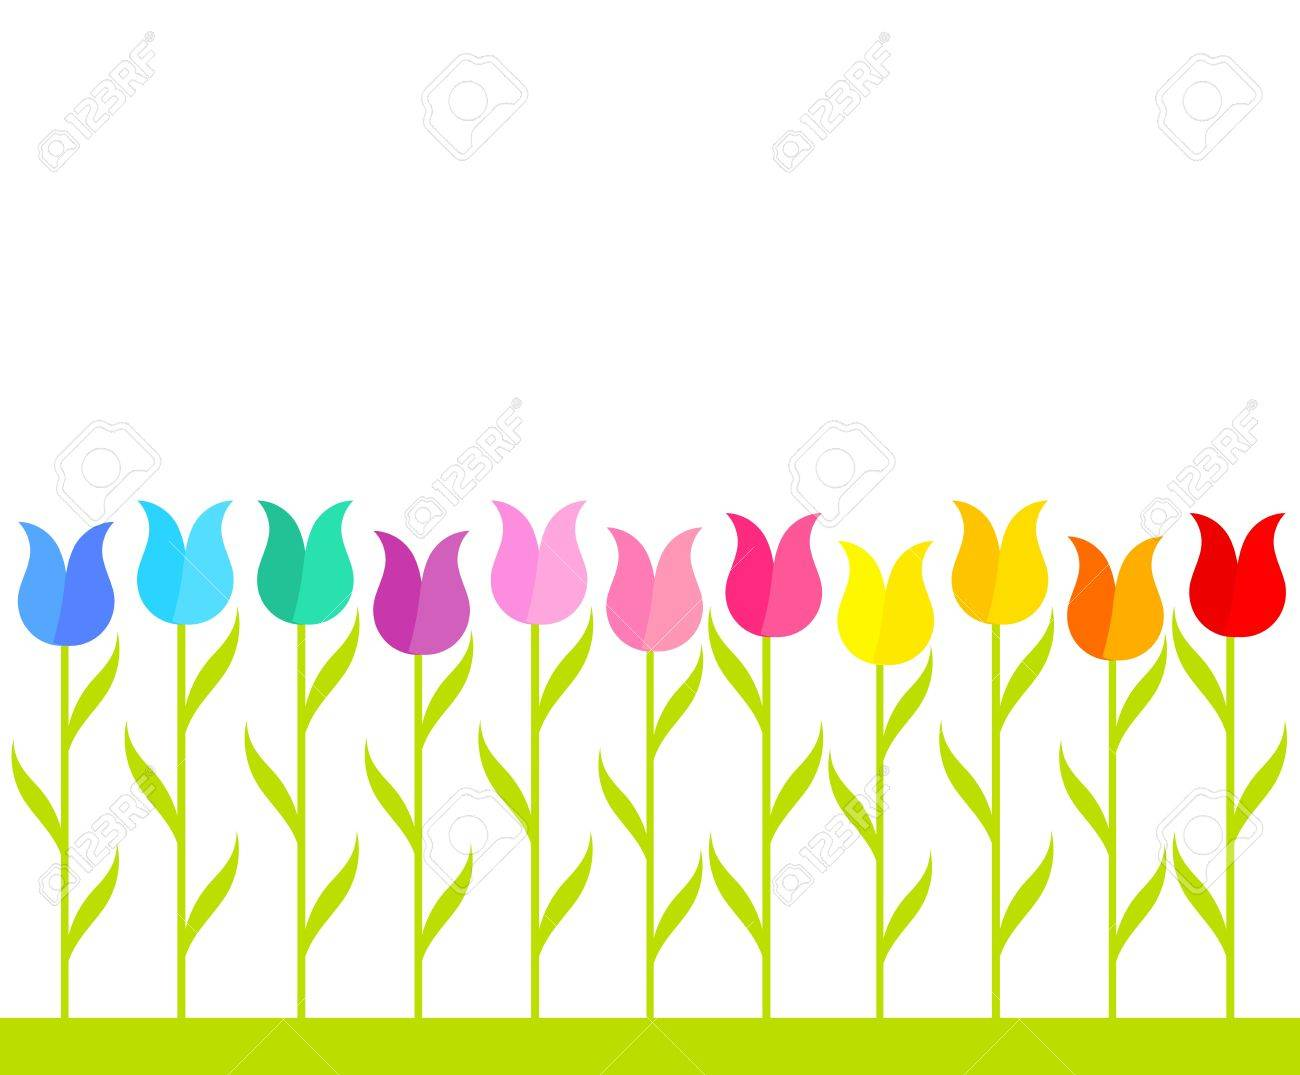 Row of multicolor tulip flowers. Vector illustration.